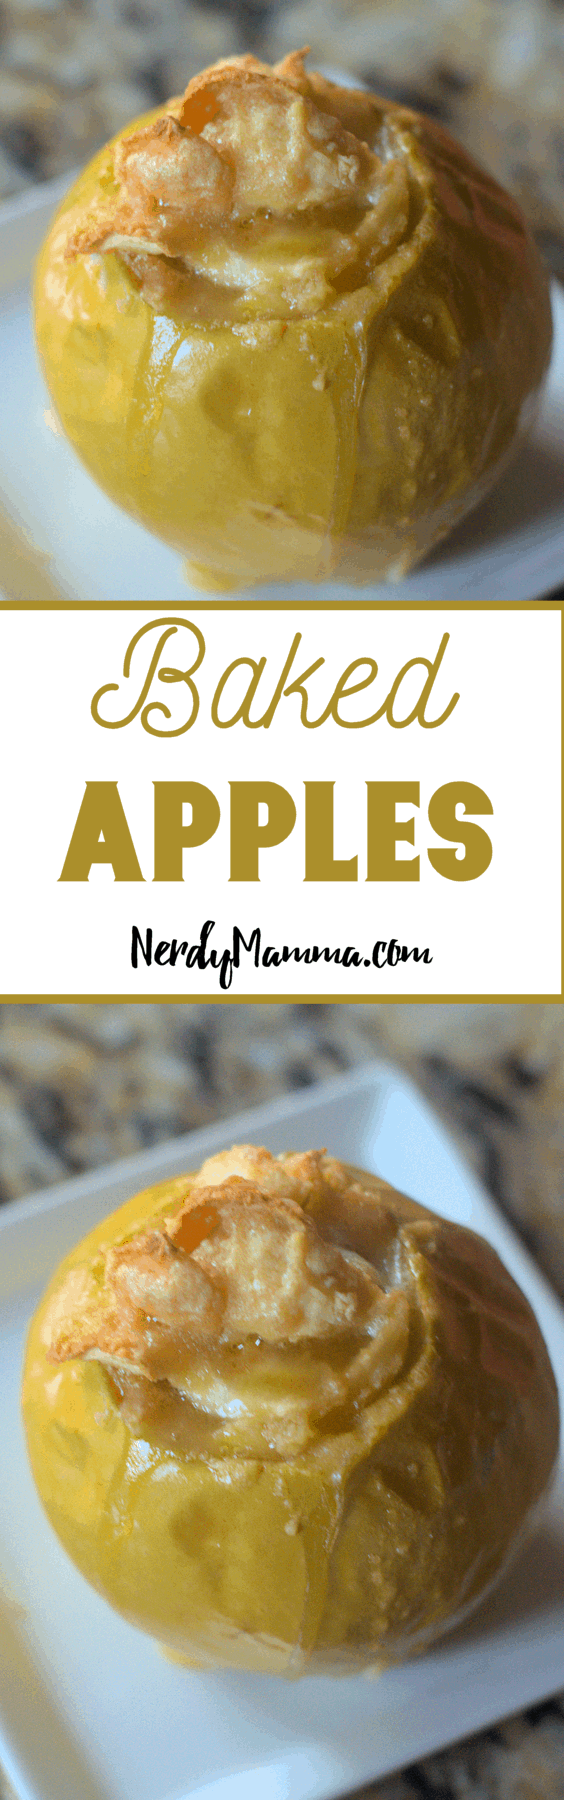 It's just something about the holidays and baked apples ya'll. You know that sweet soft melt in your mouth goodness. Want to wow your guest with a simple yet delish recipe these baked apples are perfect for that.